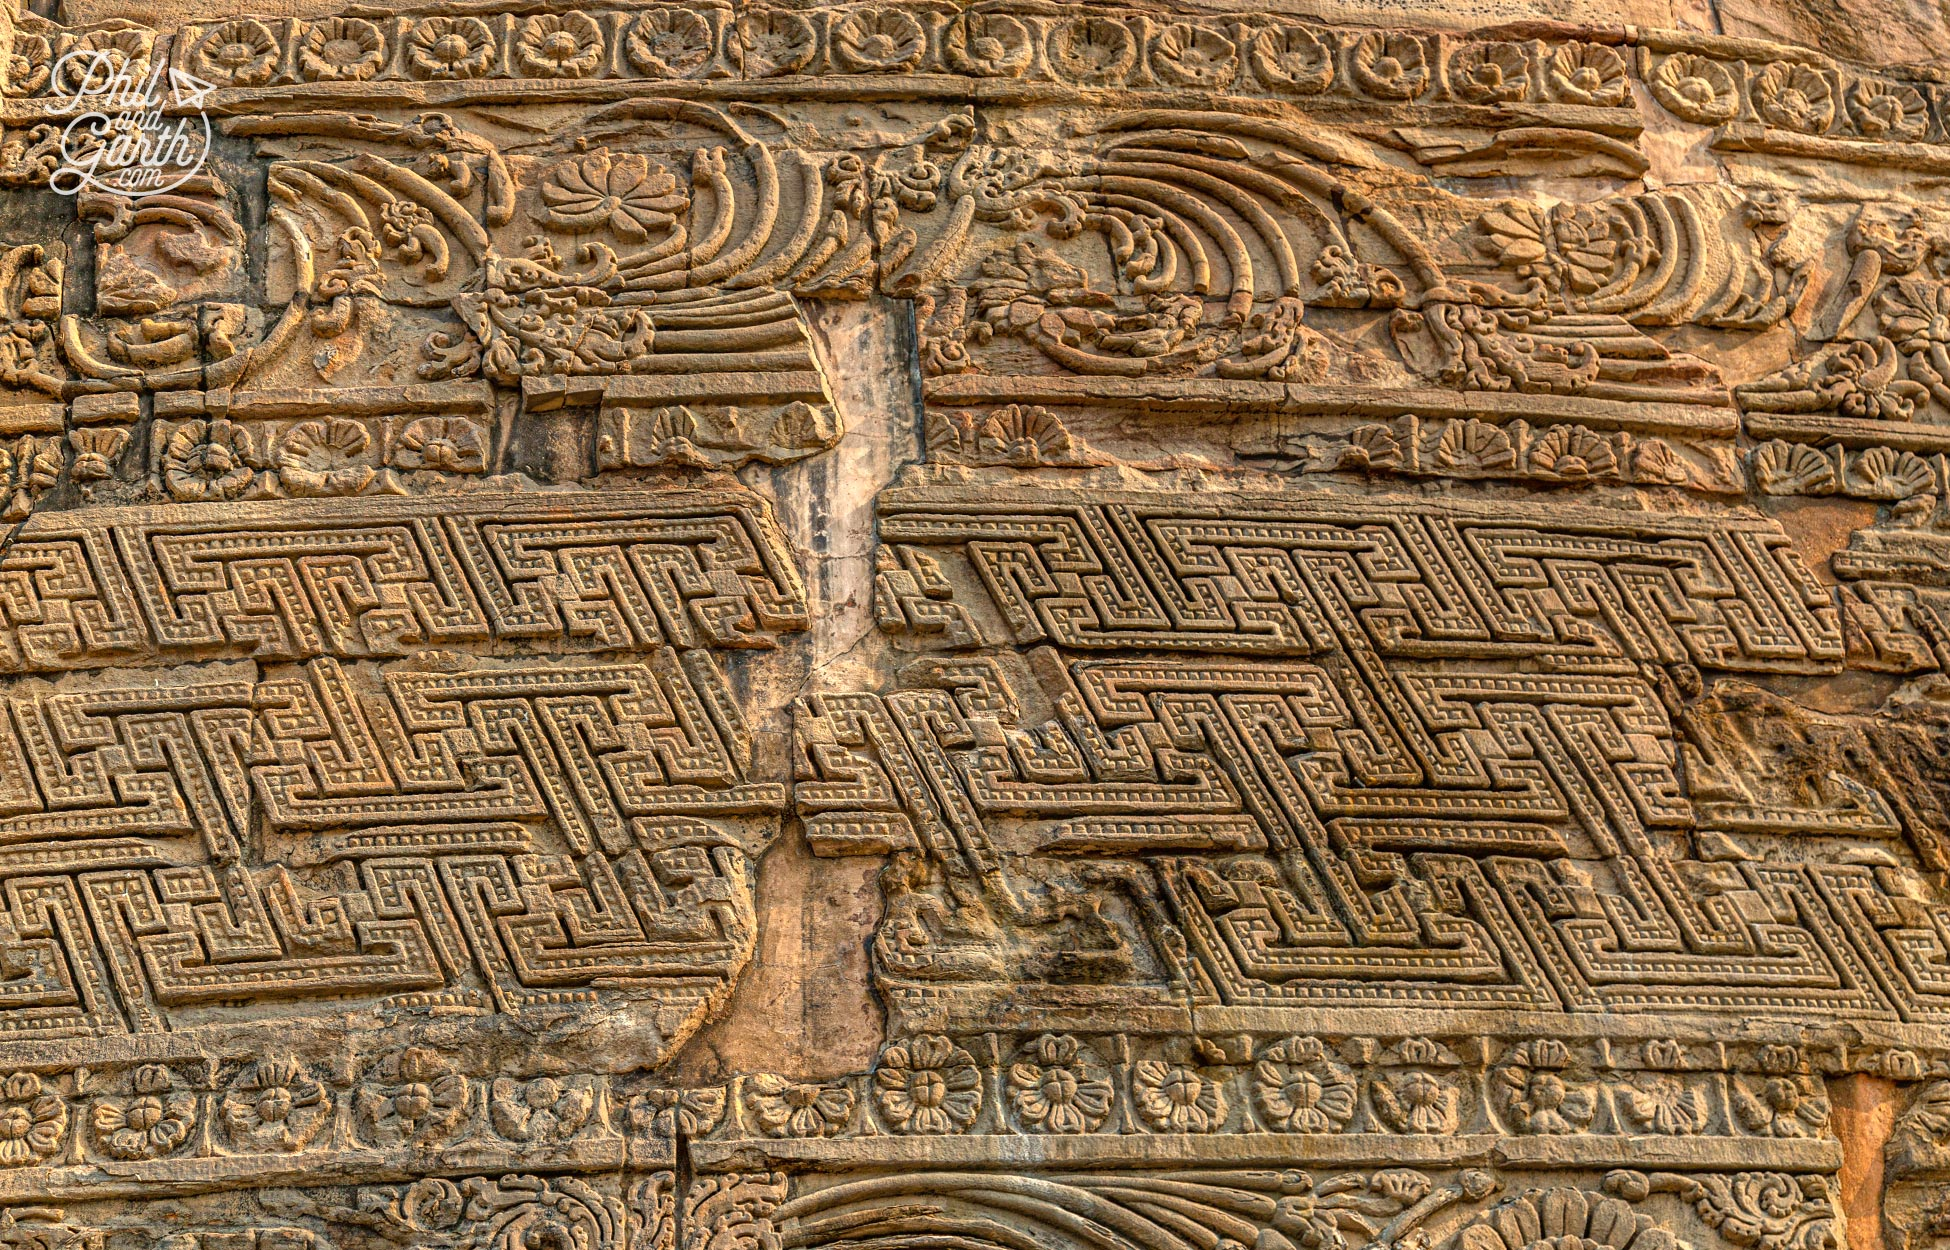 More of the floral and geometricstone carvings